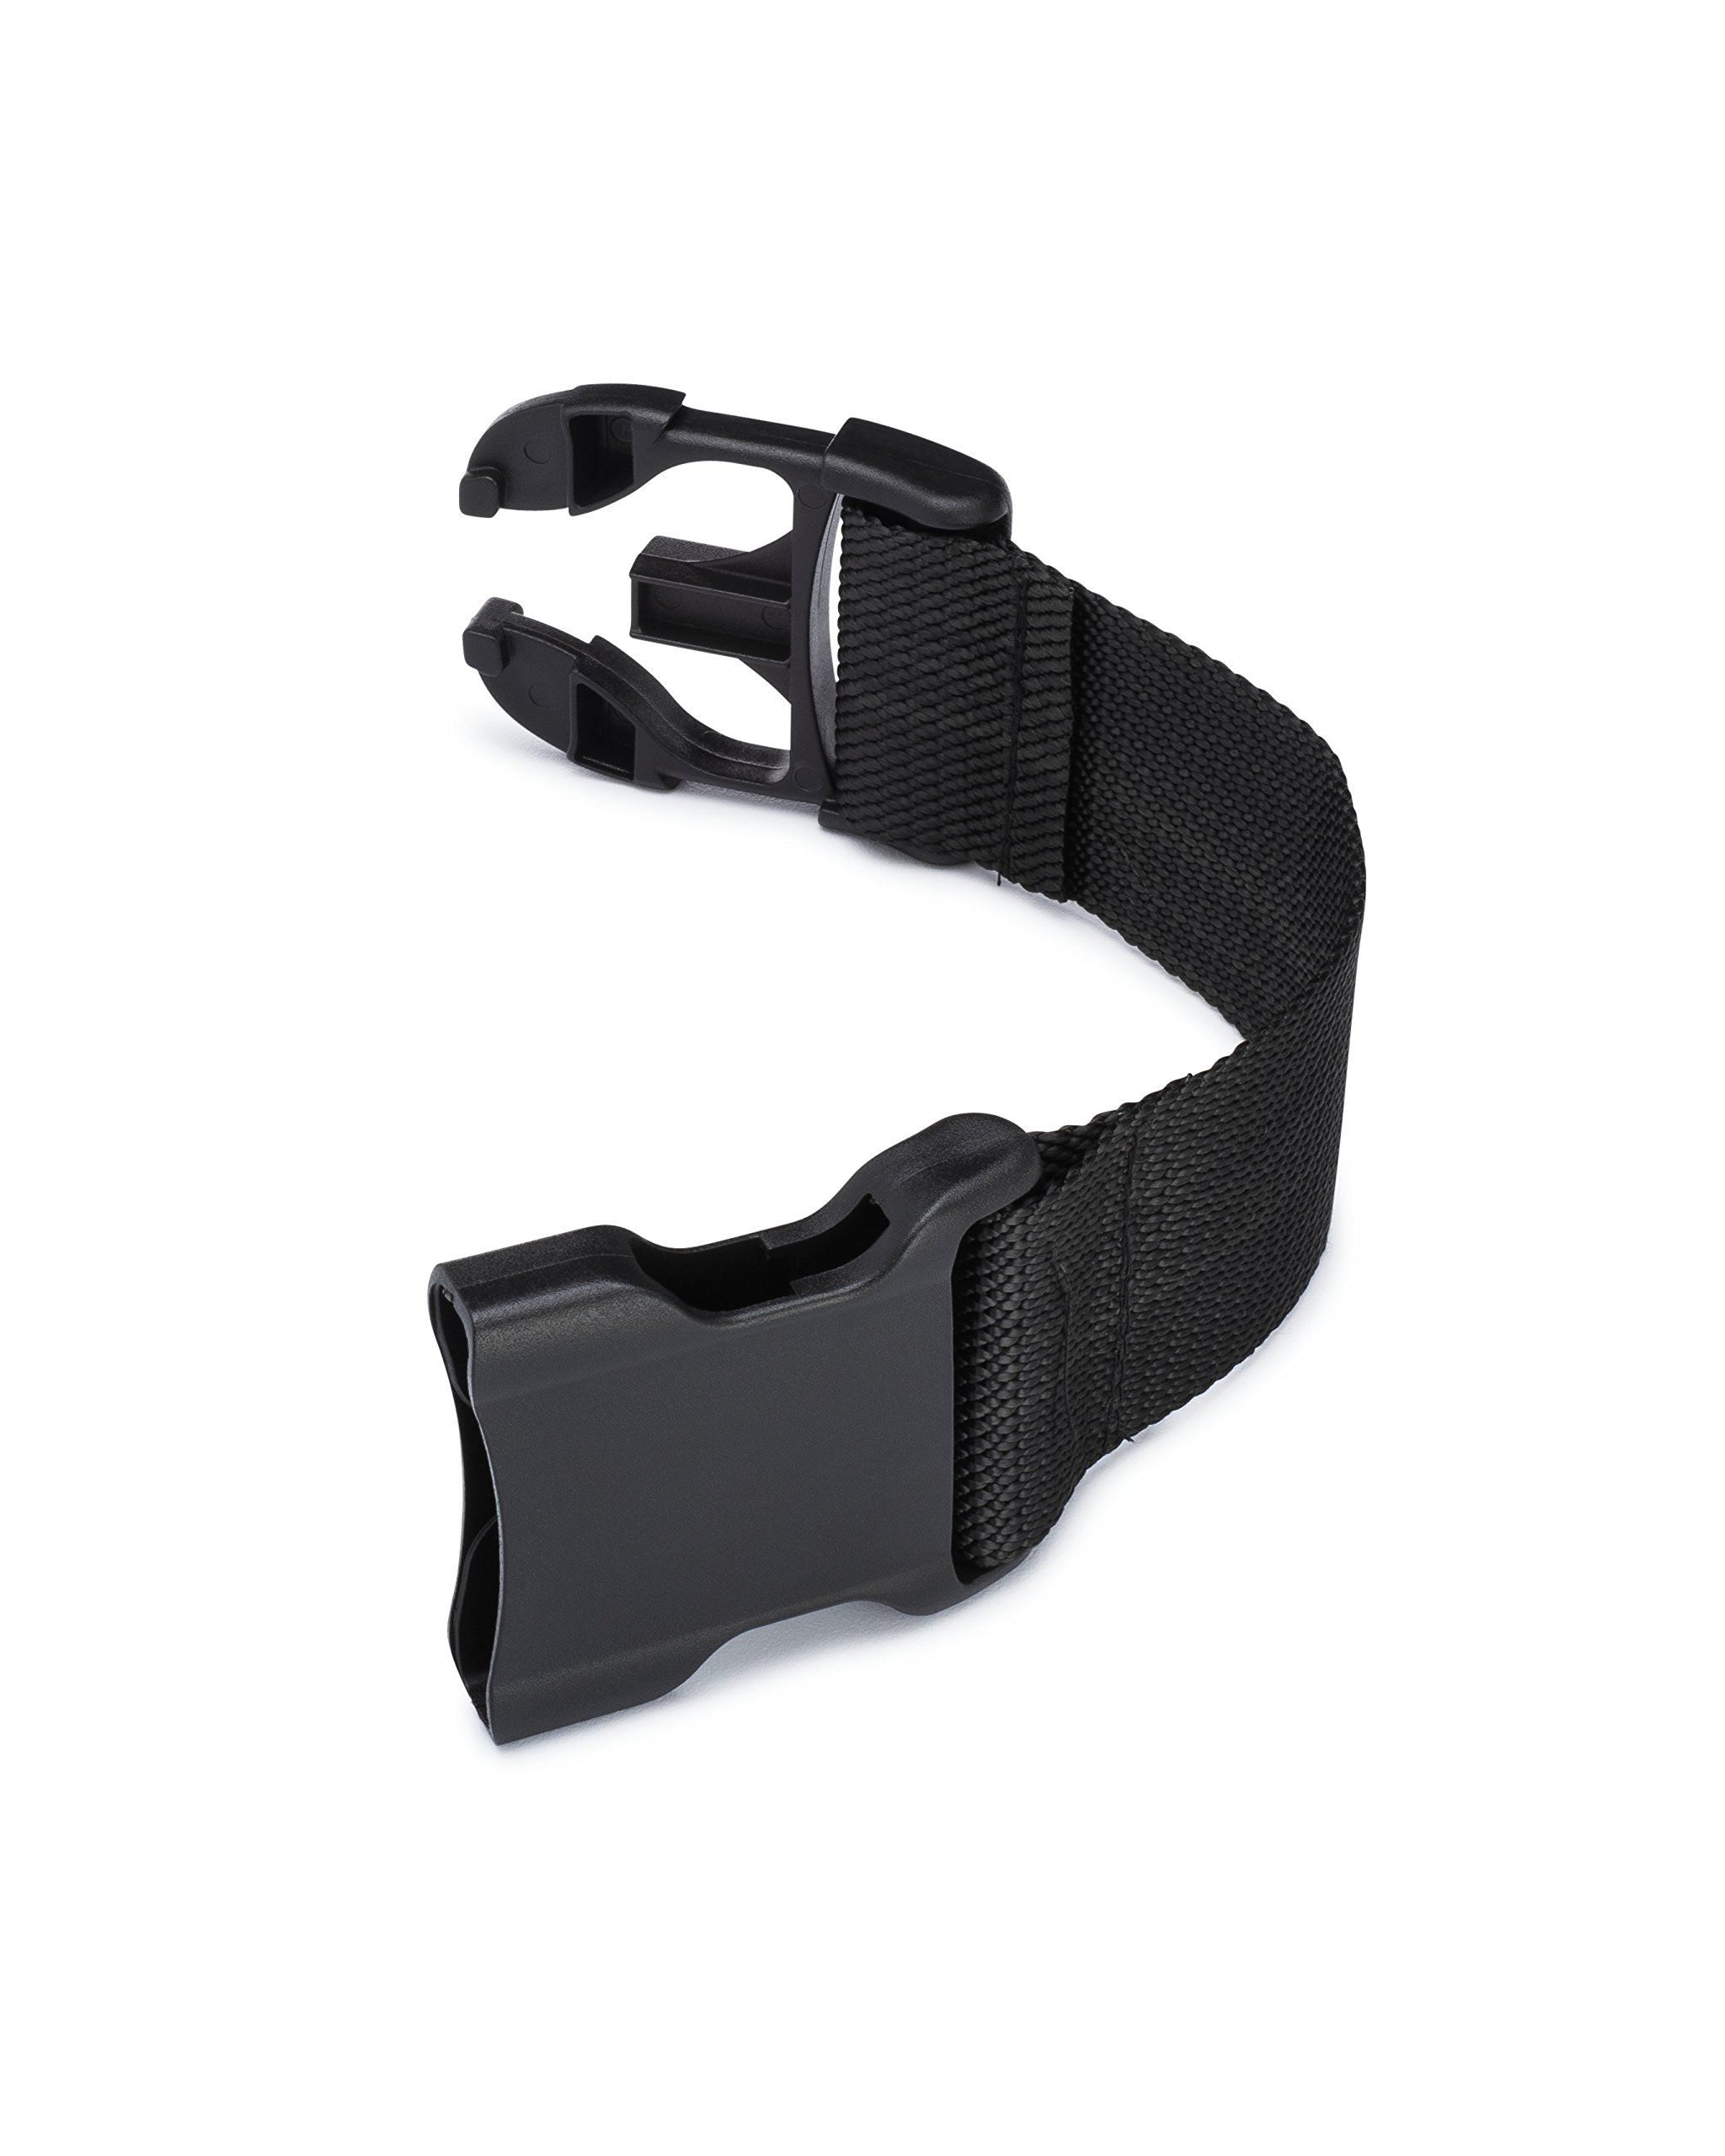 Dog Harness Chest Strap Extender For Industrial Puppy Harness